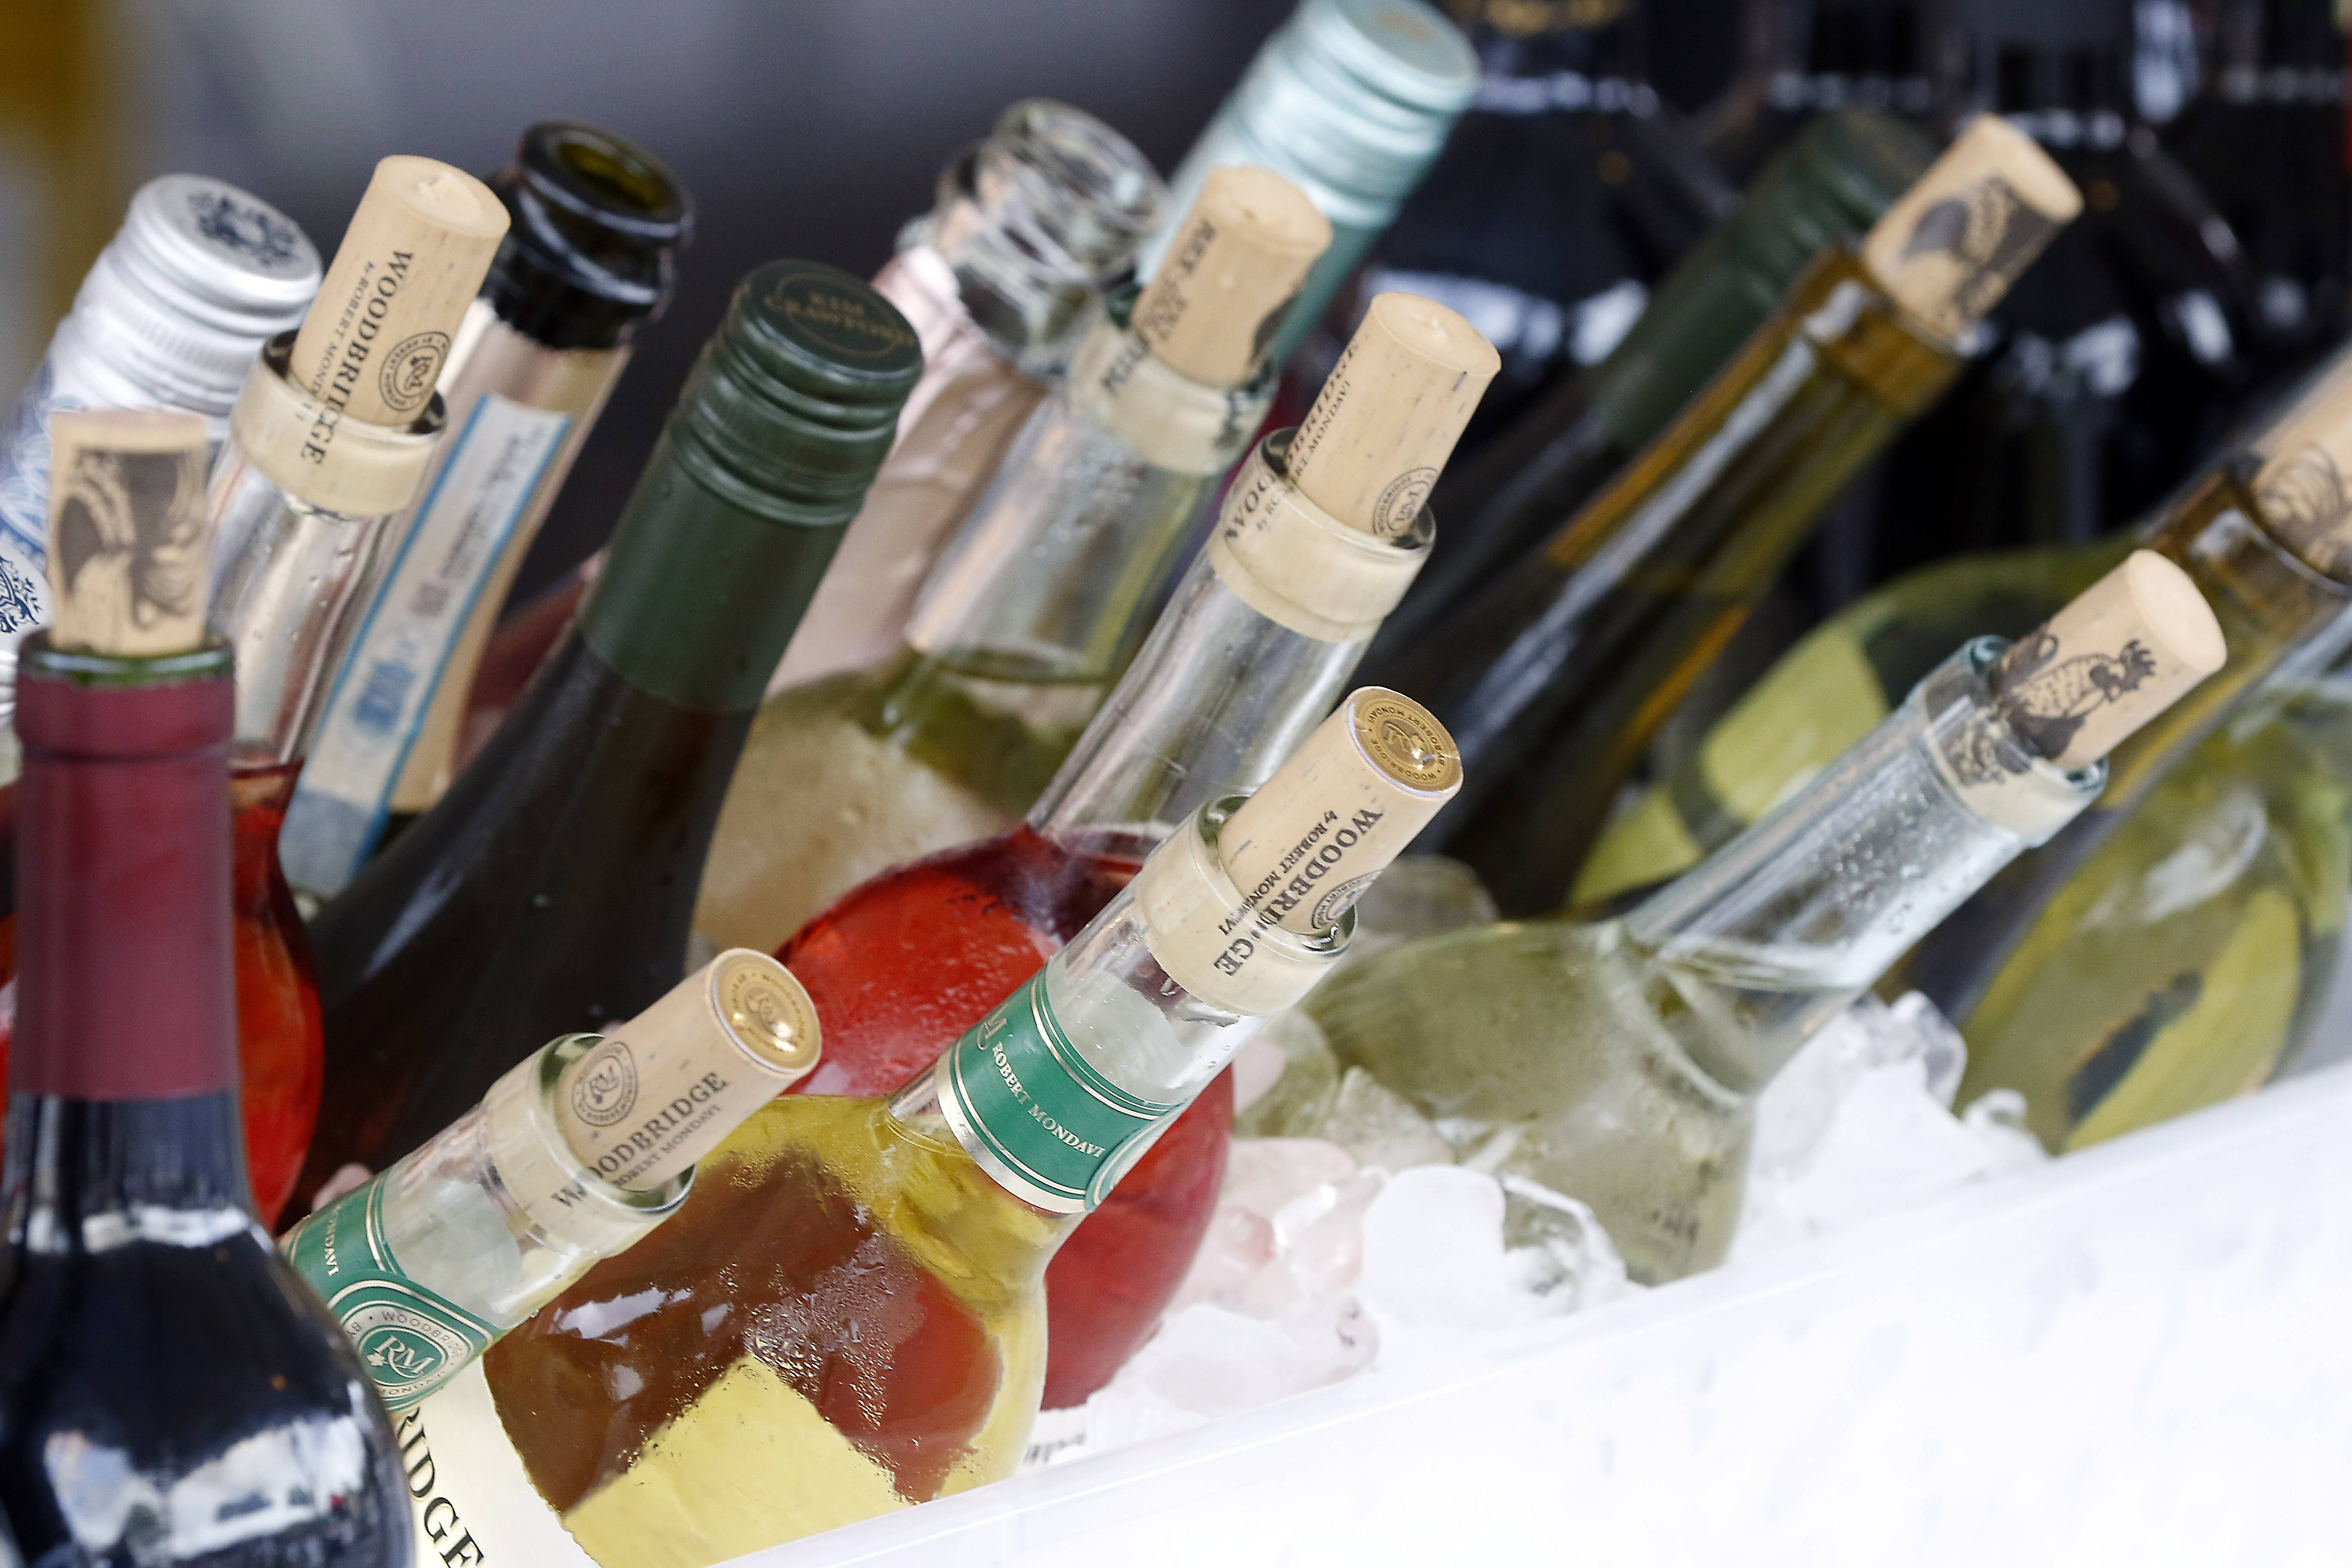 Sample from a wide variety of wines this weekend during Geneva's Festival of the Vine.